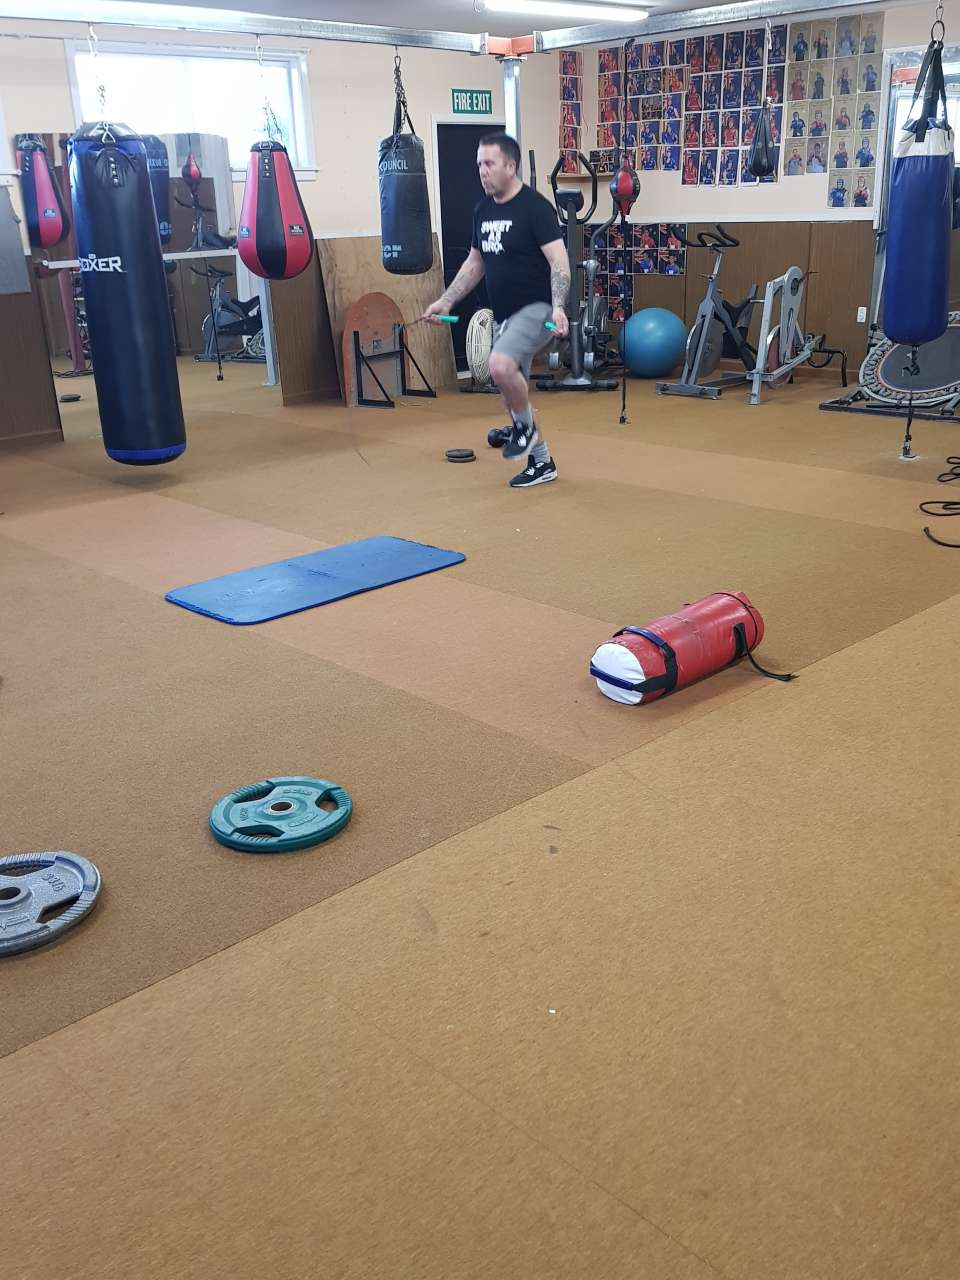 On Wednesday I took Shane through his first circuit workout. Circuits are amazing as they help improve not only your strength but also cardio as well. Kai pai Shane! #session8